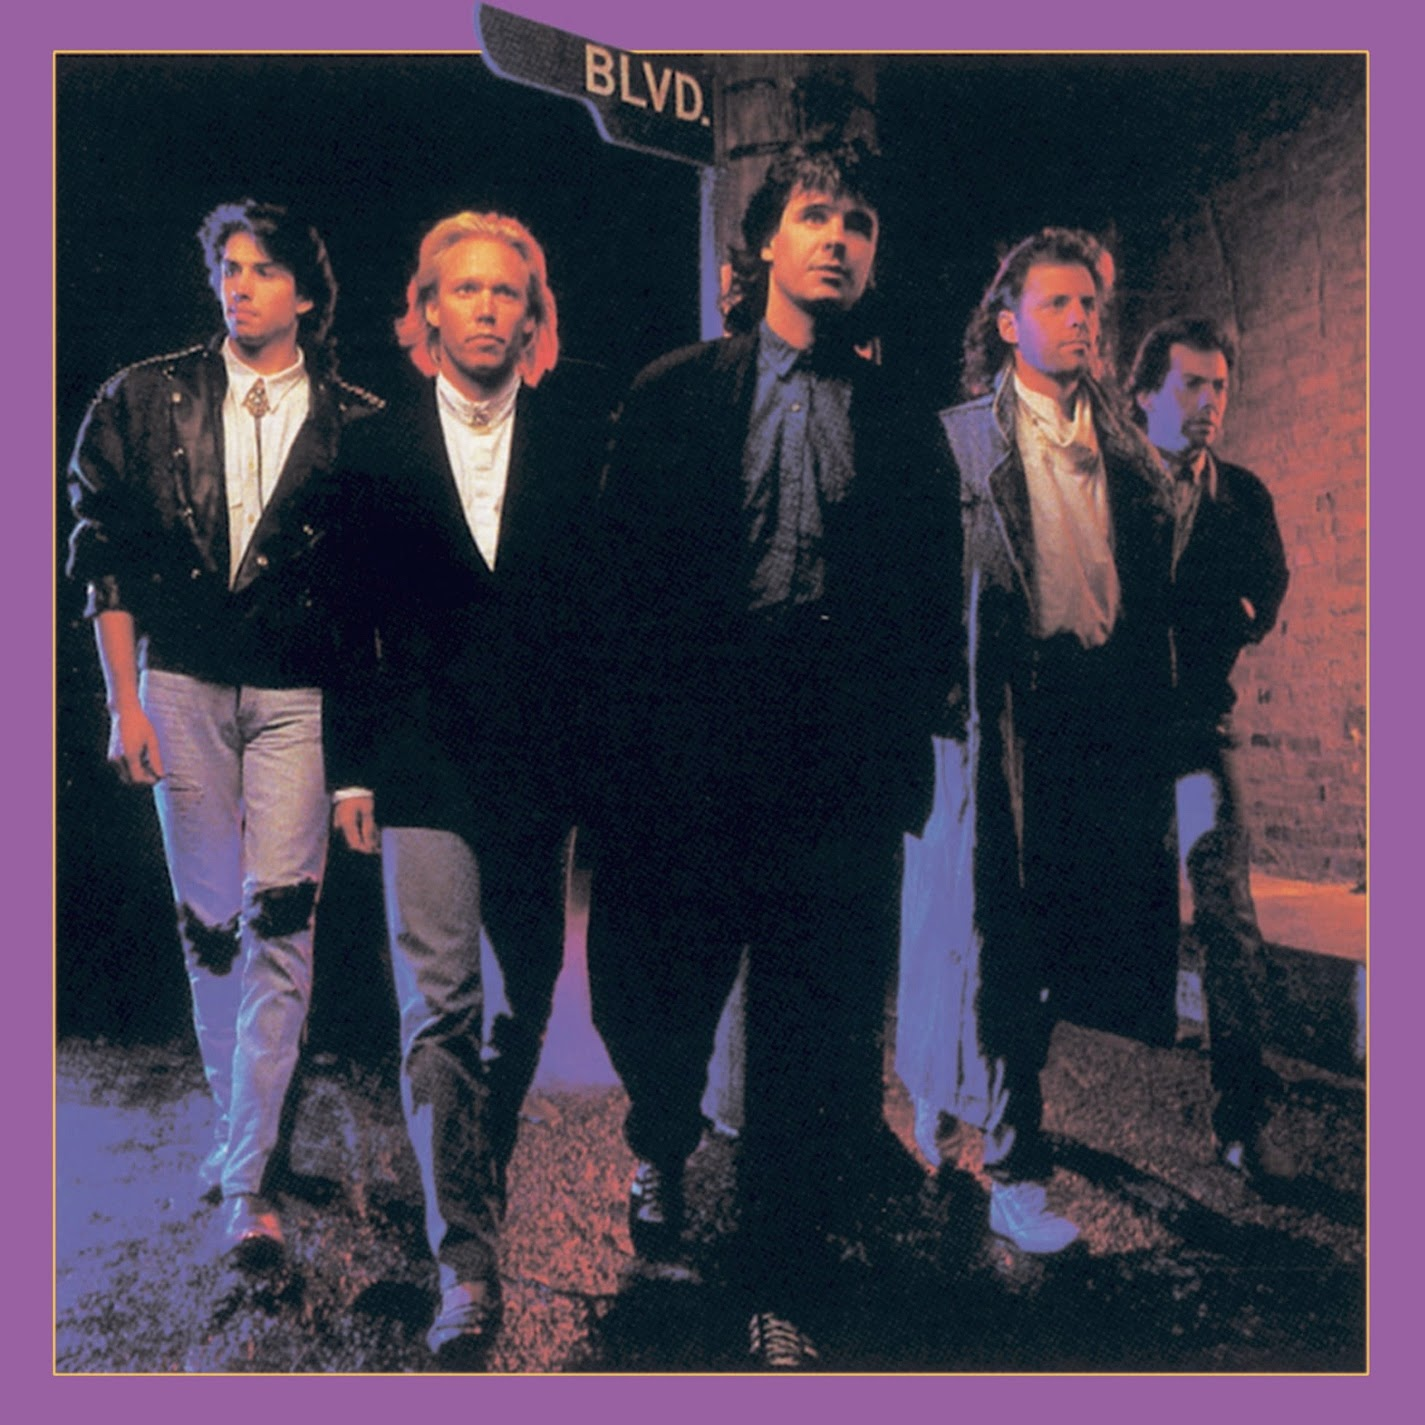 Boulevard BLVD st 1988 aor melodic rock music blogspot bands albums